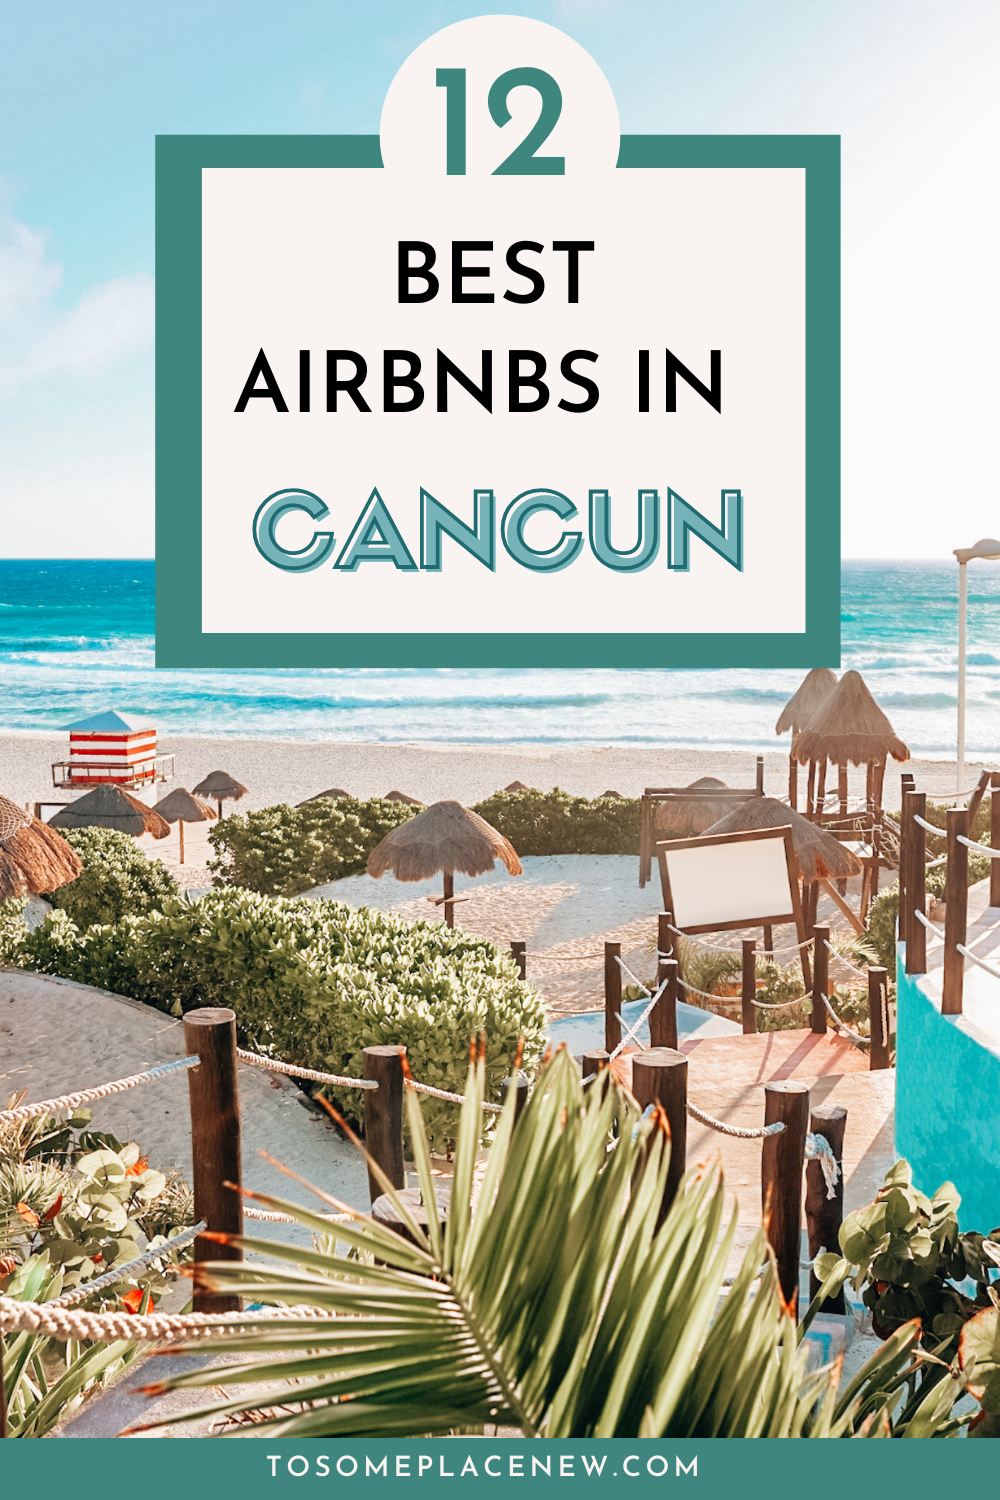 12 Best Airbnbs In Cancun For Your Next Getaway In 2021 Cancun Mexico Travel Mexico Travel Cancun Mexico Resorts